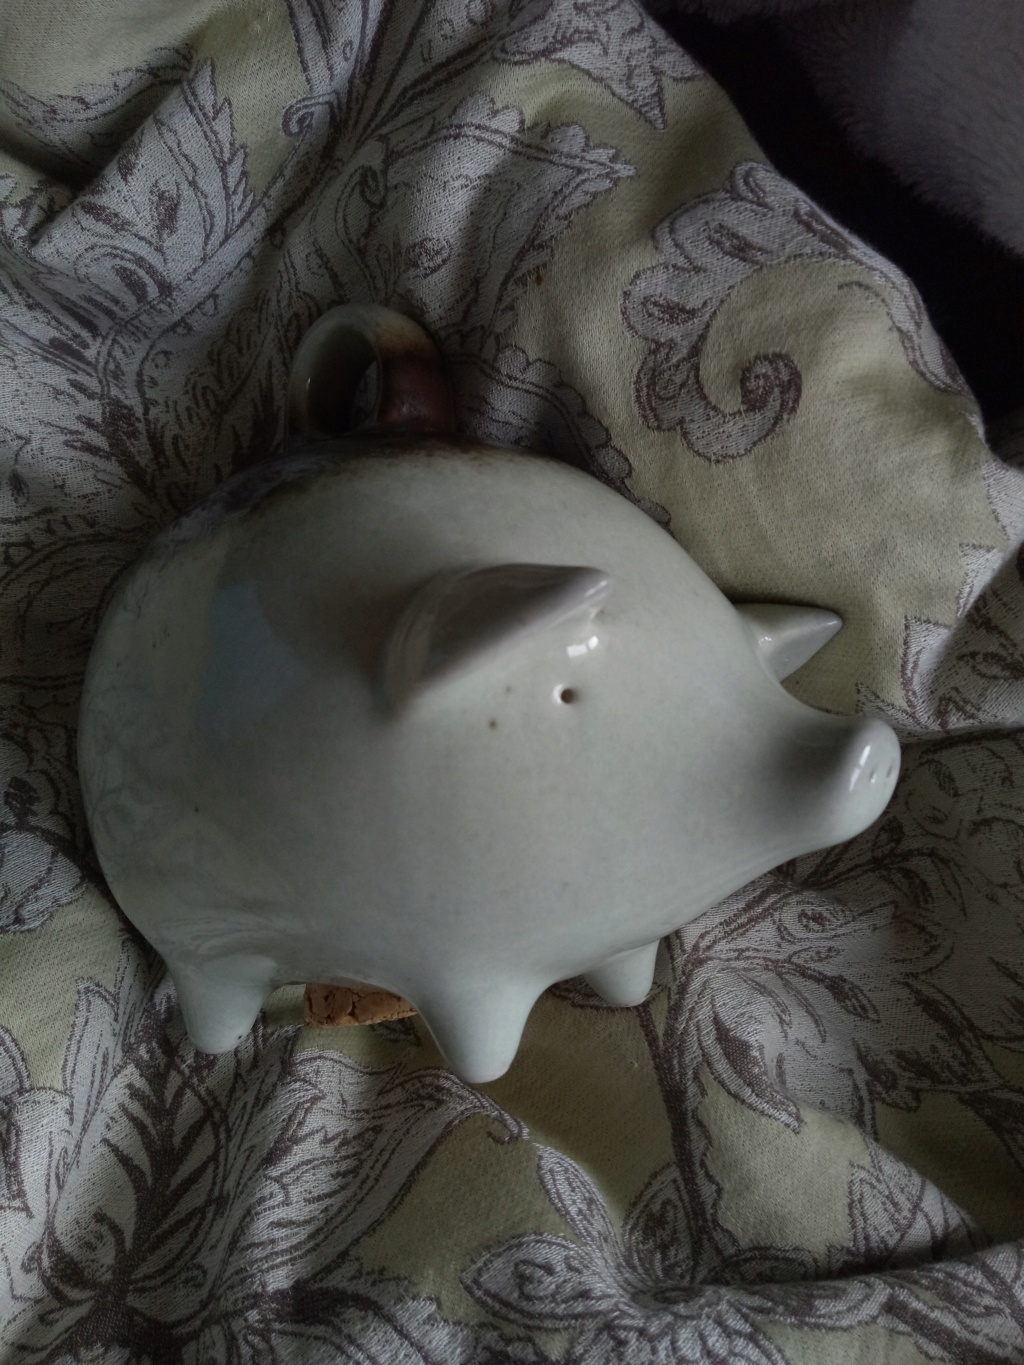 Piggy bank unknown maker Img20112